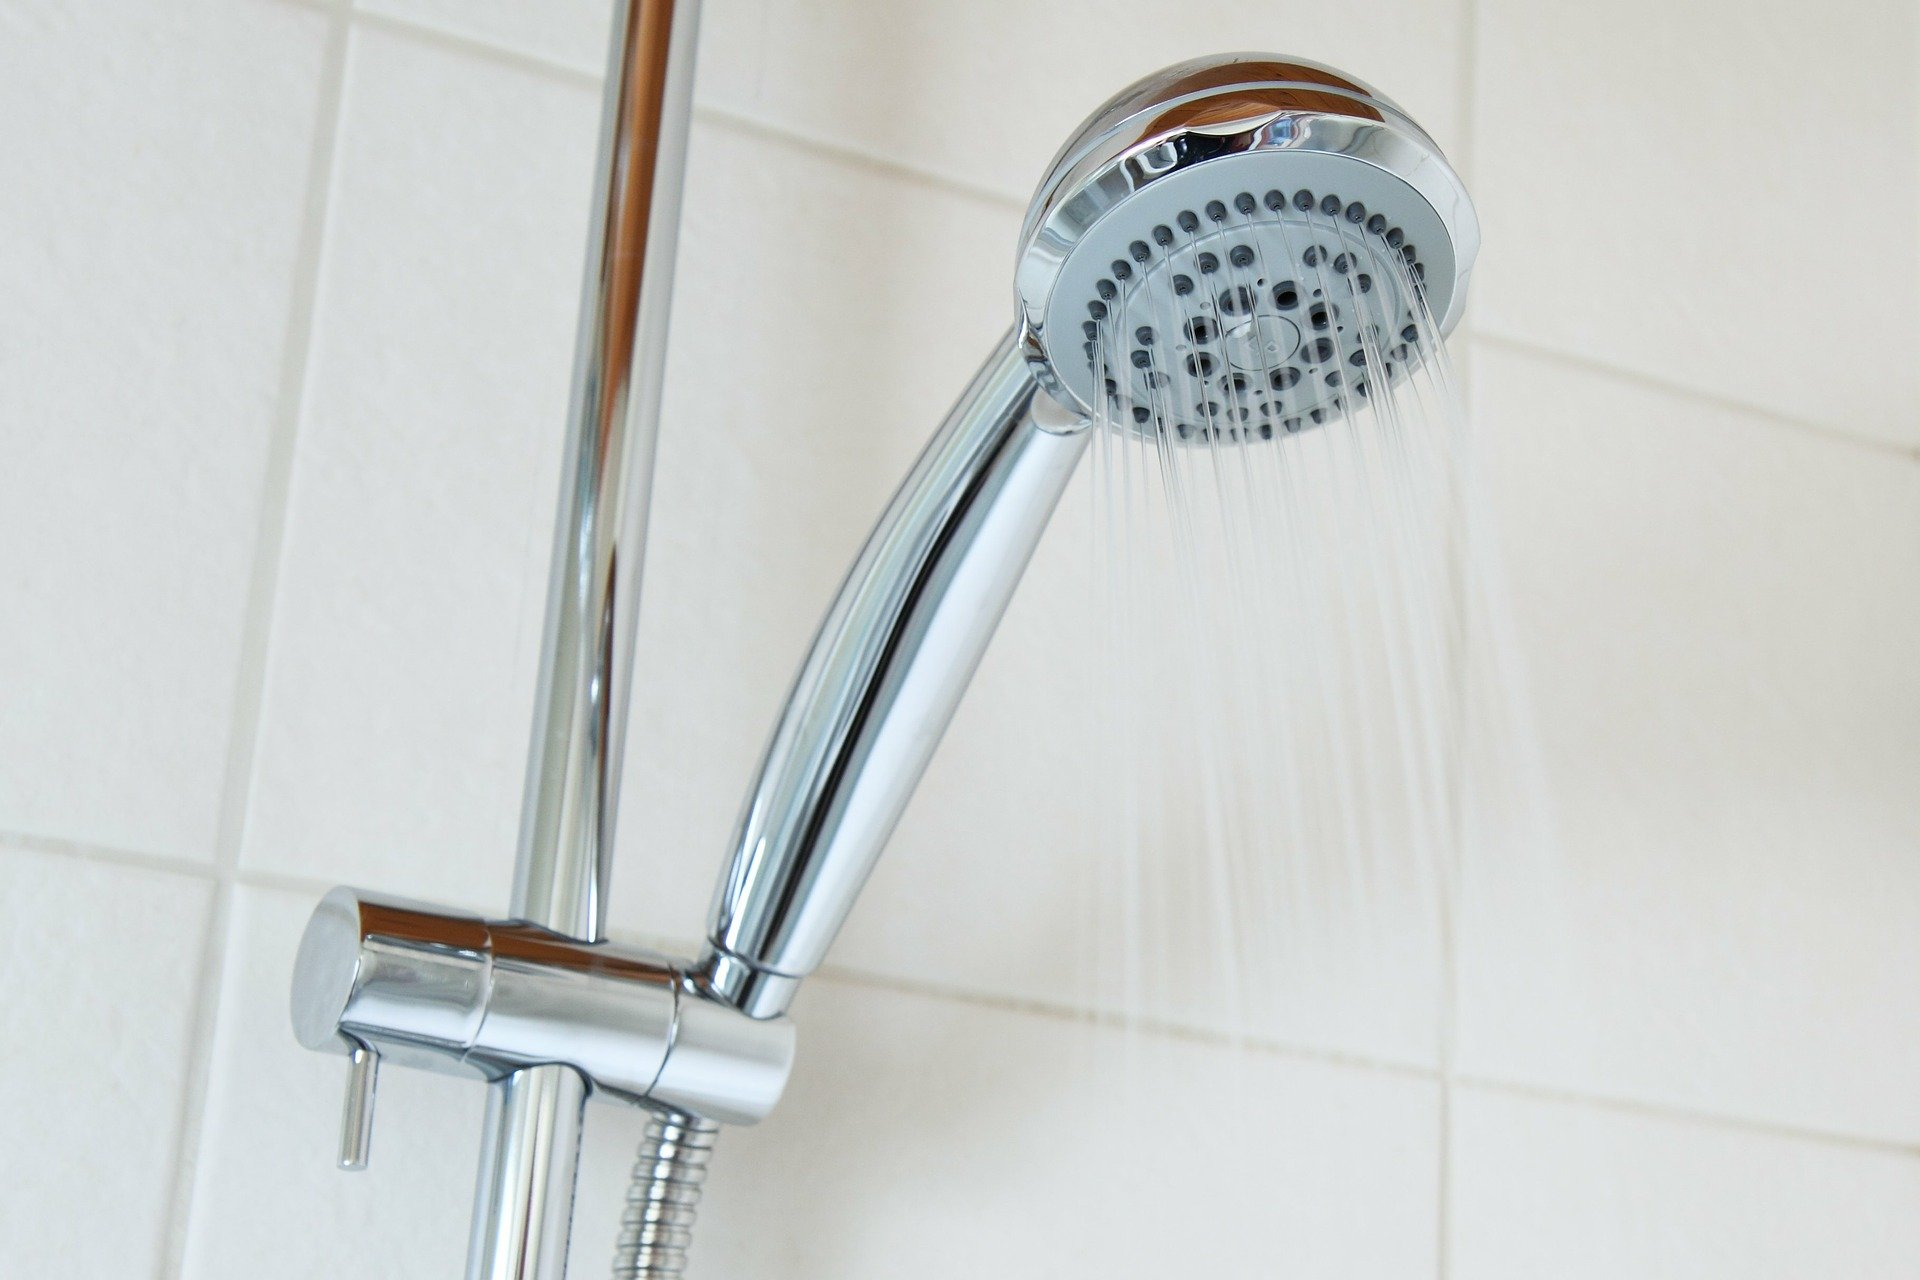 Chrome shower head spraying water, against a back-drop of white tiles